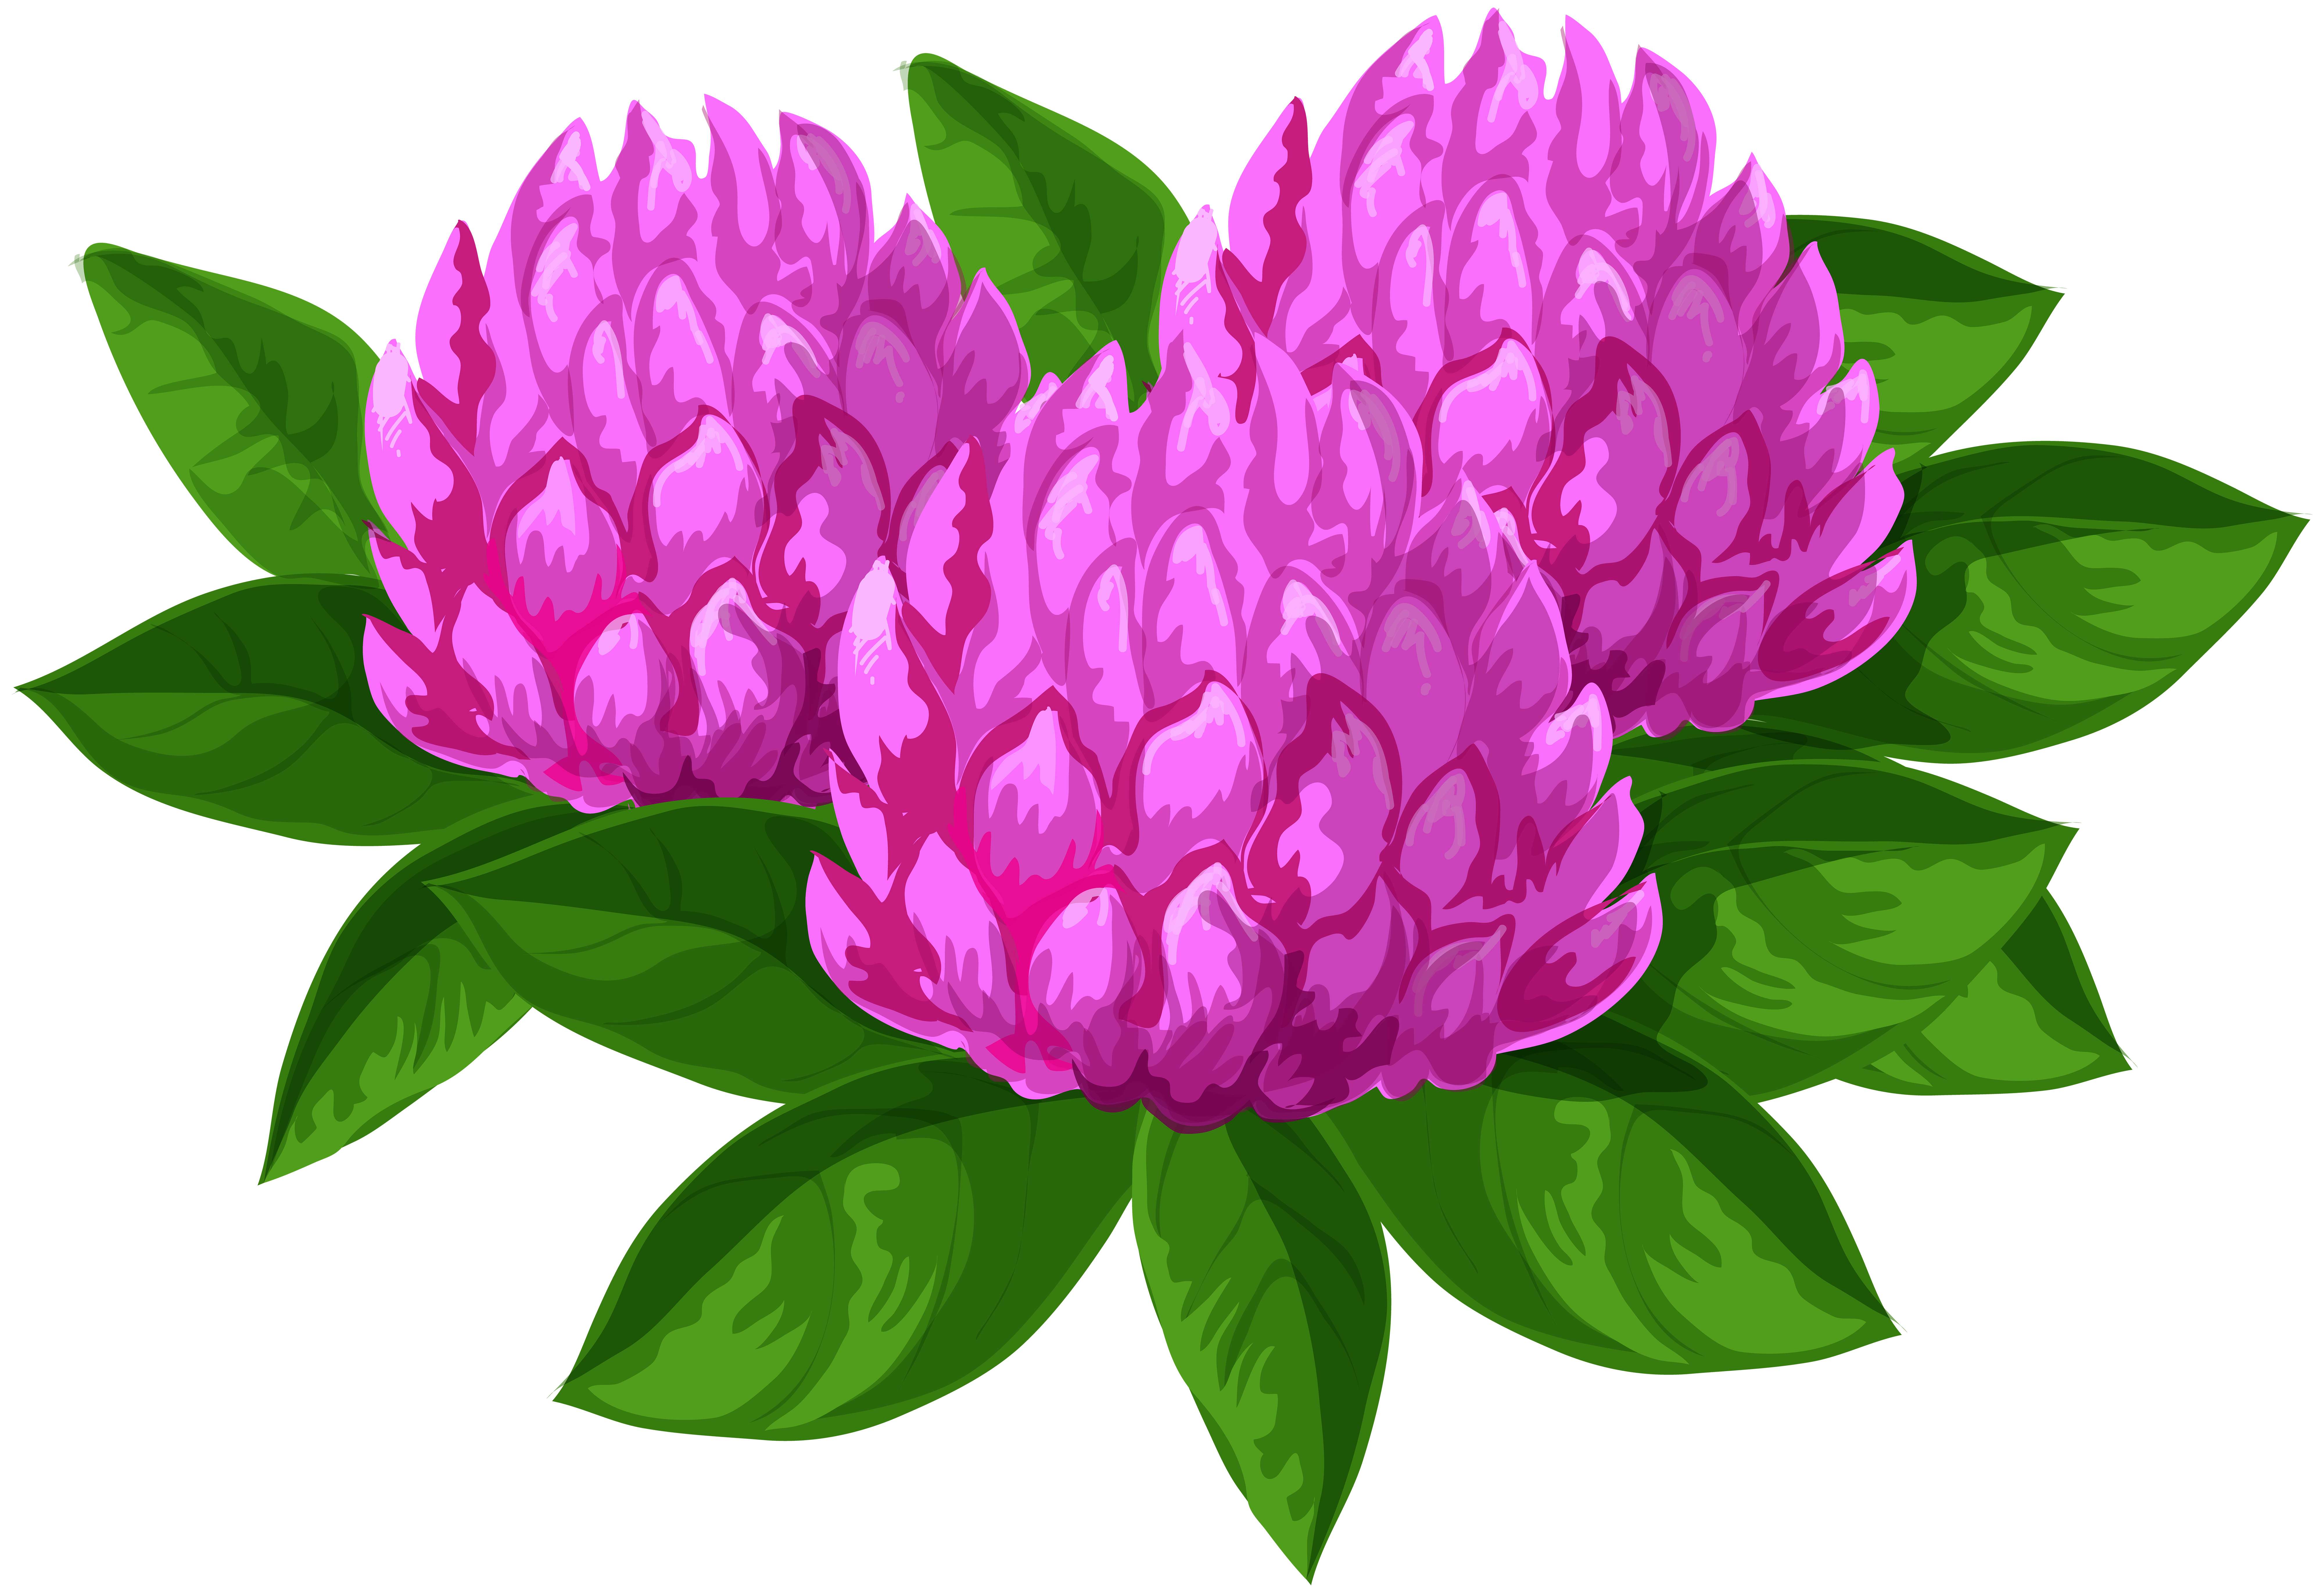 Free clipart of wild flowers. Png clip art image